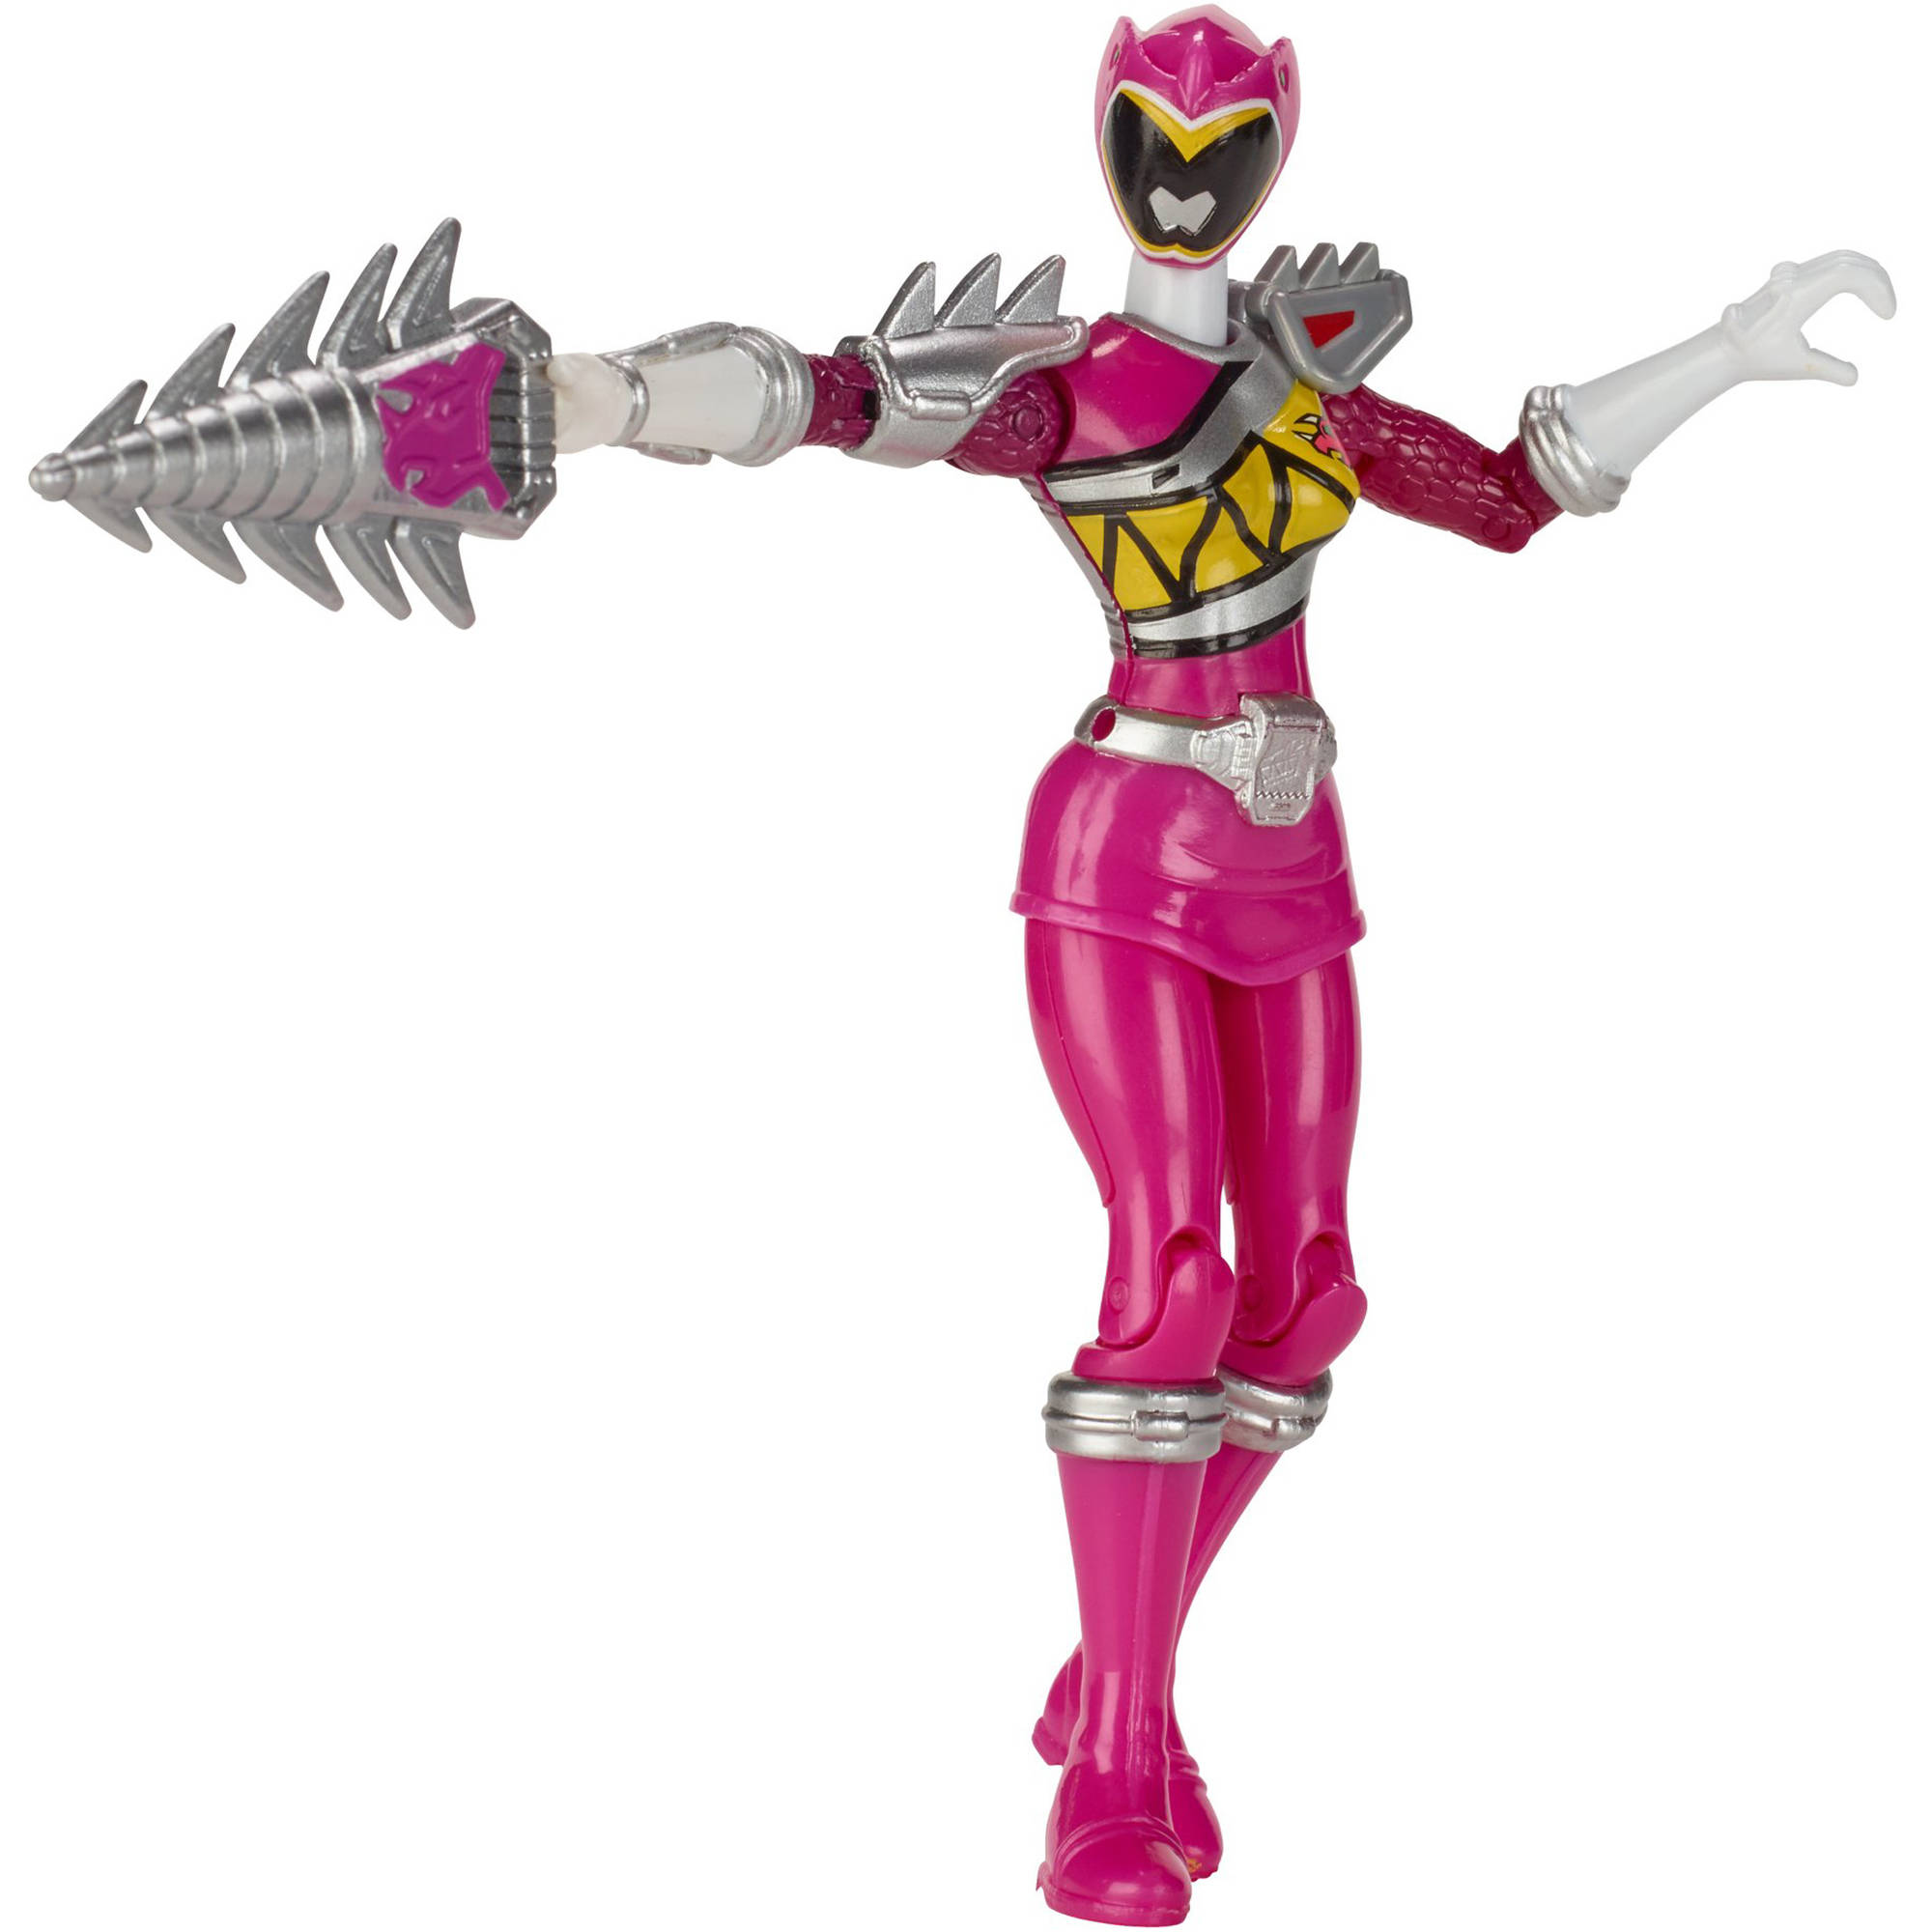 Power Rangers Dino Super Charge Dino Steel Pink Ranger by Bandai America